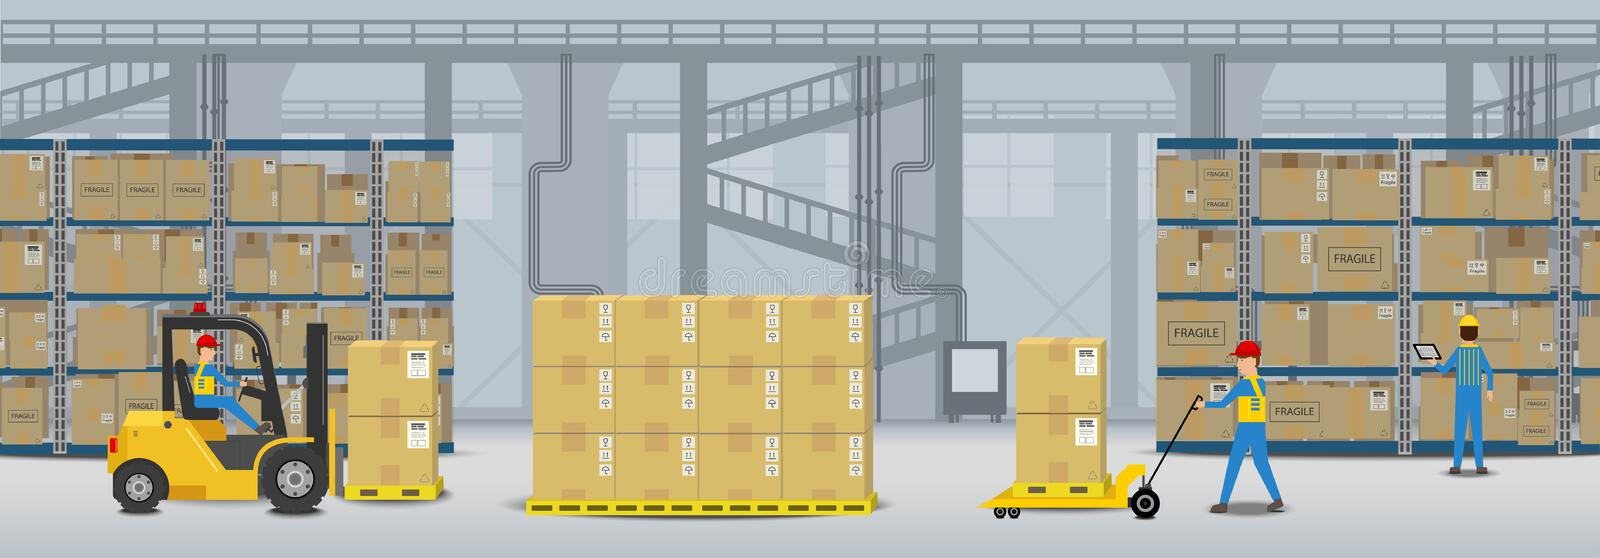 Workflow in warehouse. Warehouse interior with workers working flat design vector illustration